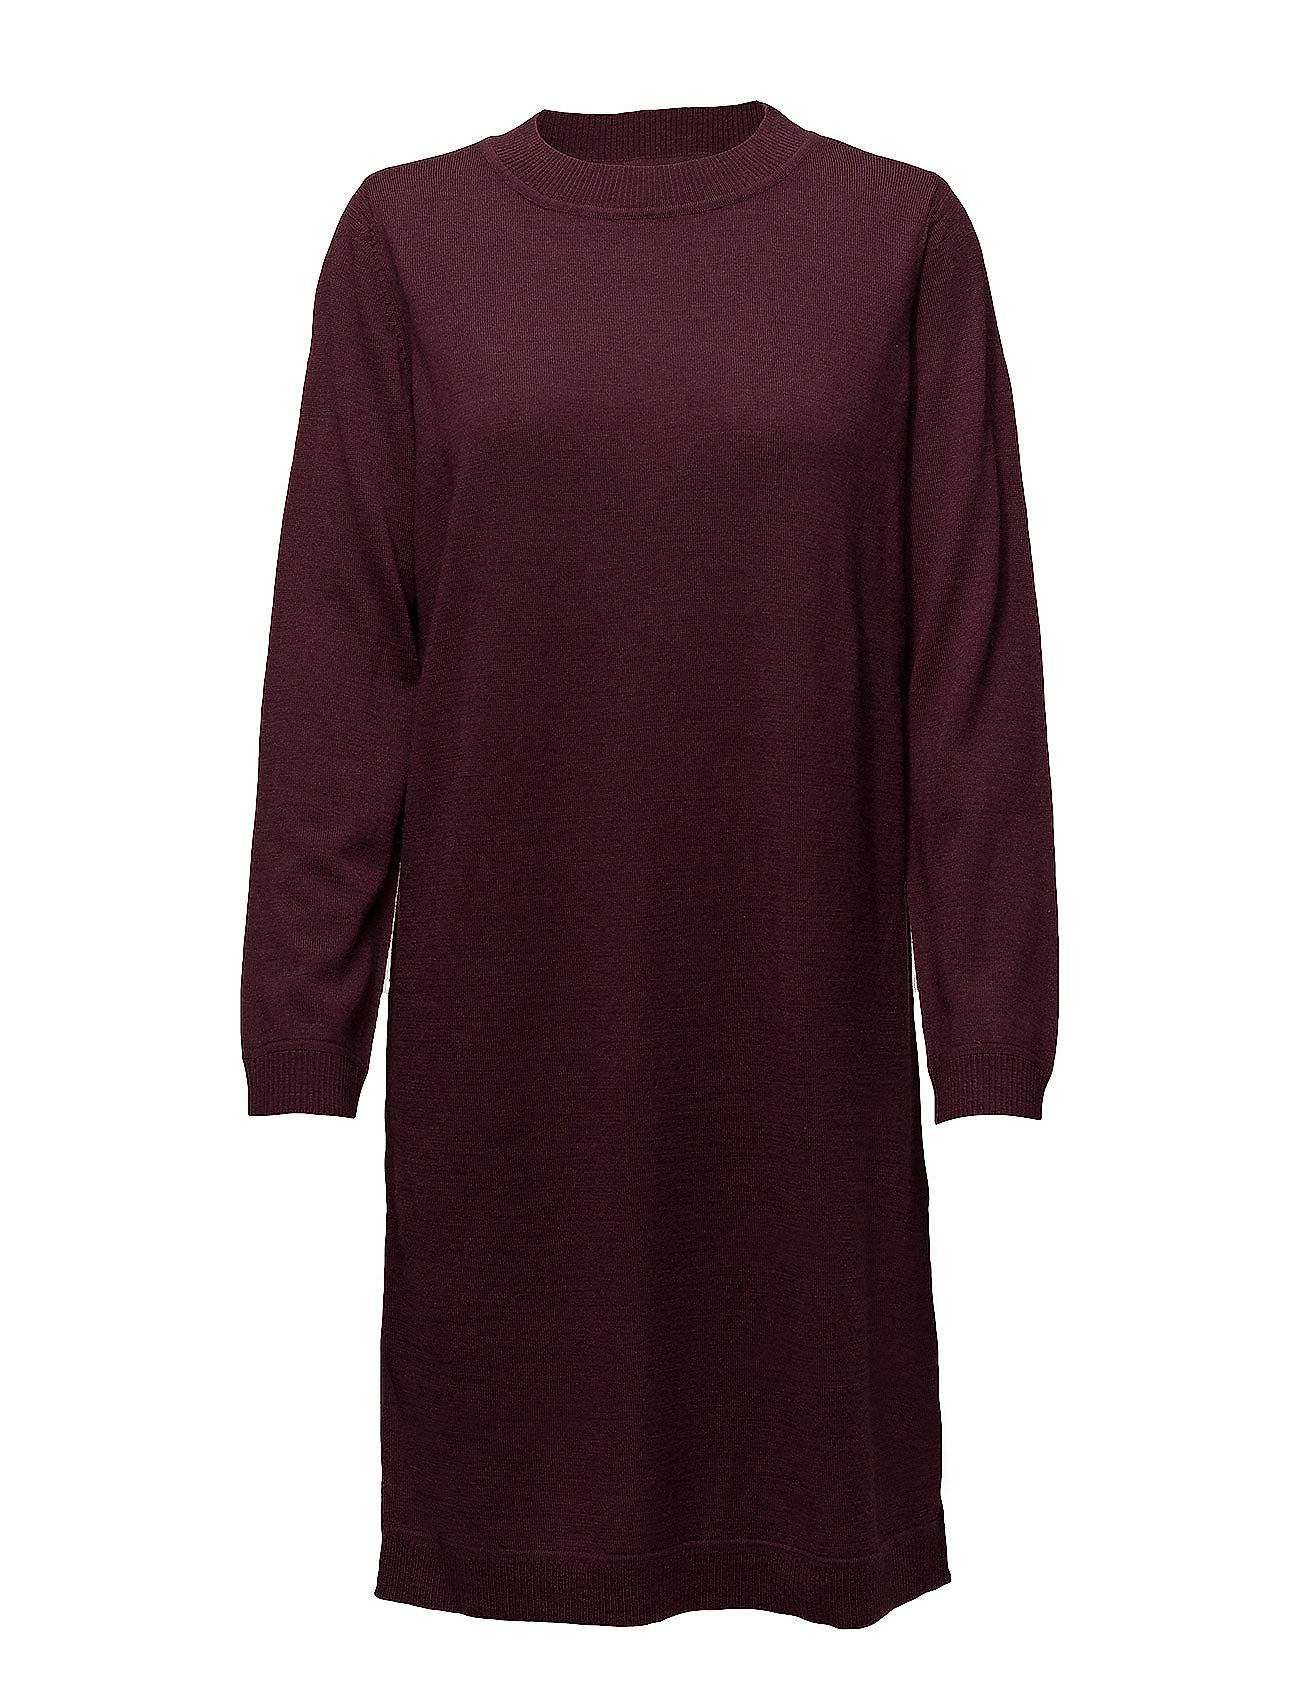 Selected Femme Sfeileen Ls Knit O-Neck Dress